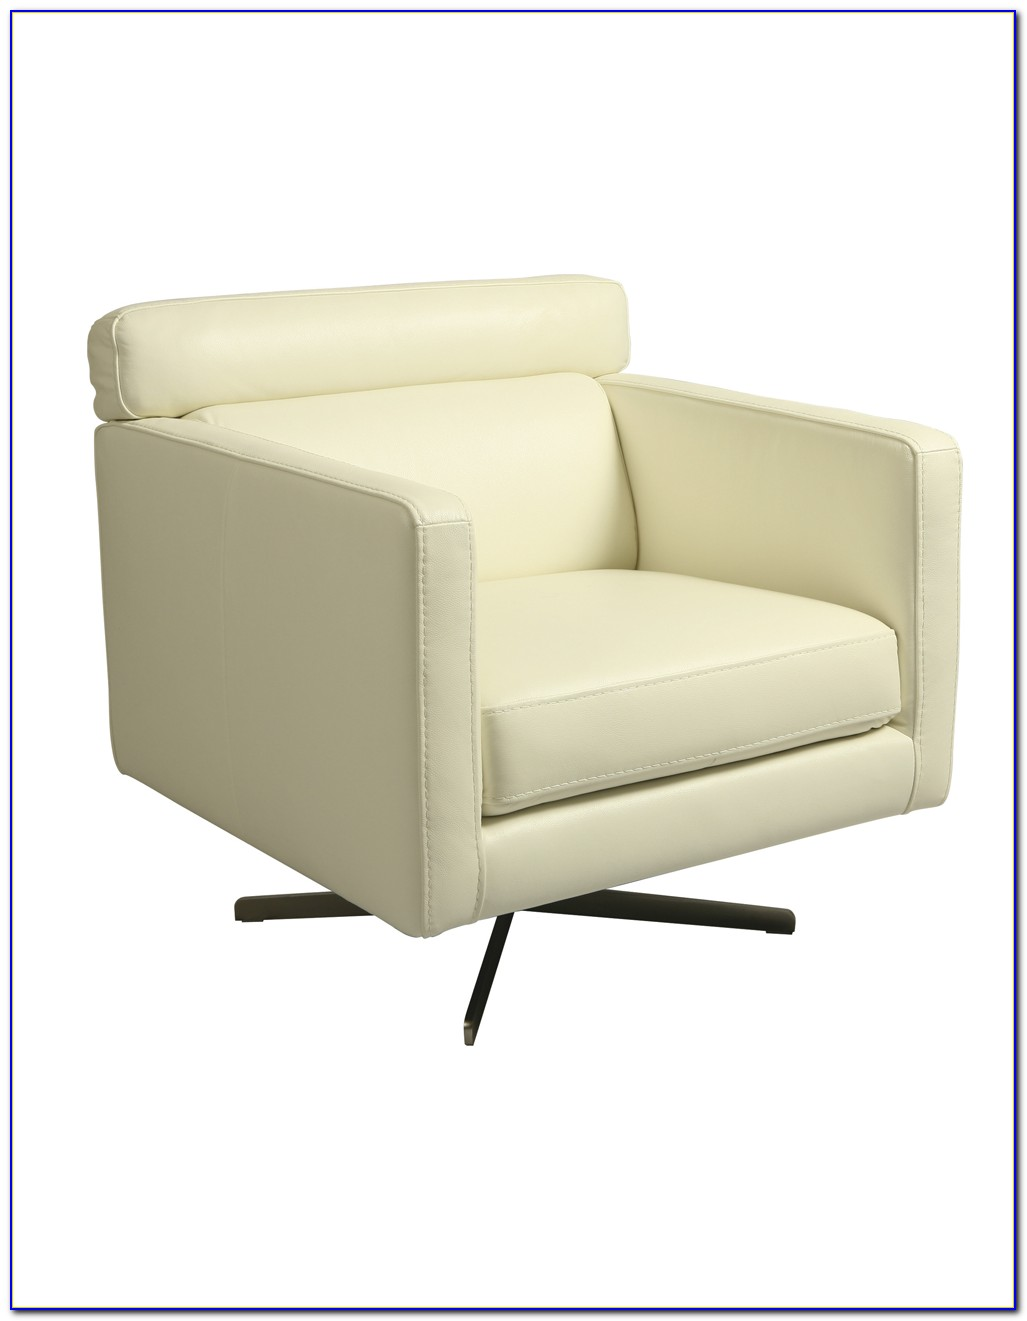 Modern White Leather Club Chair